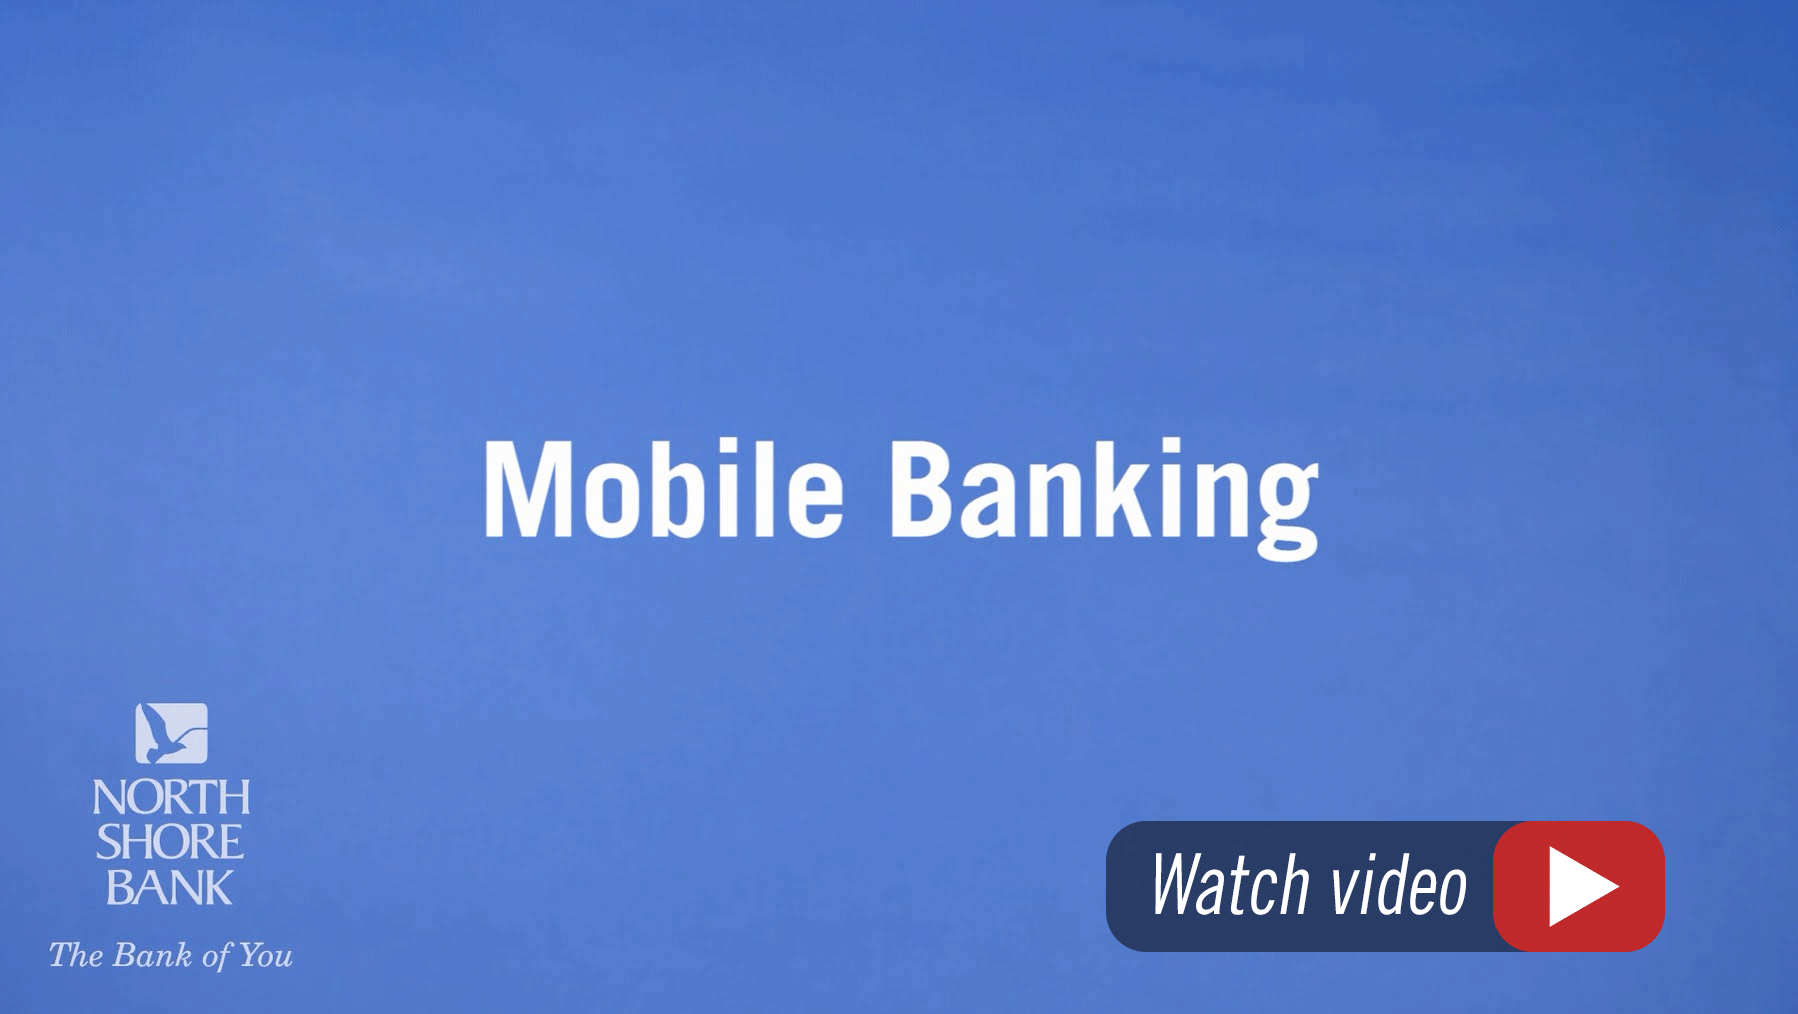 North Shore Bank Mobile Banking